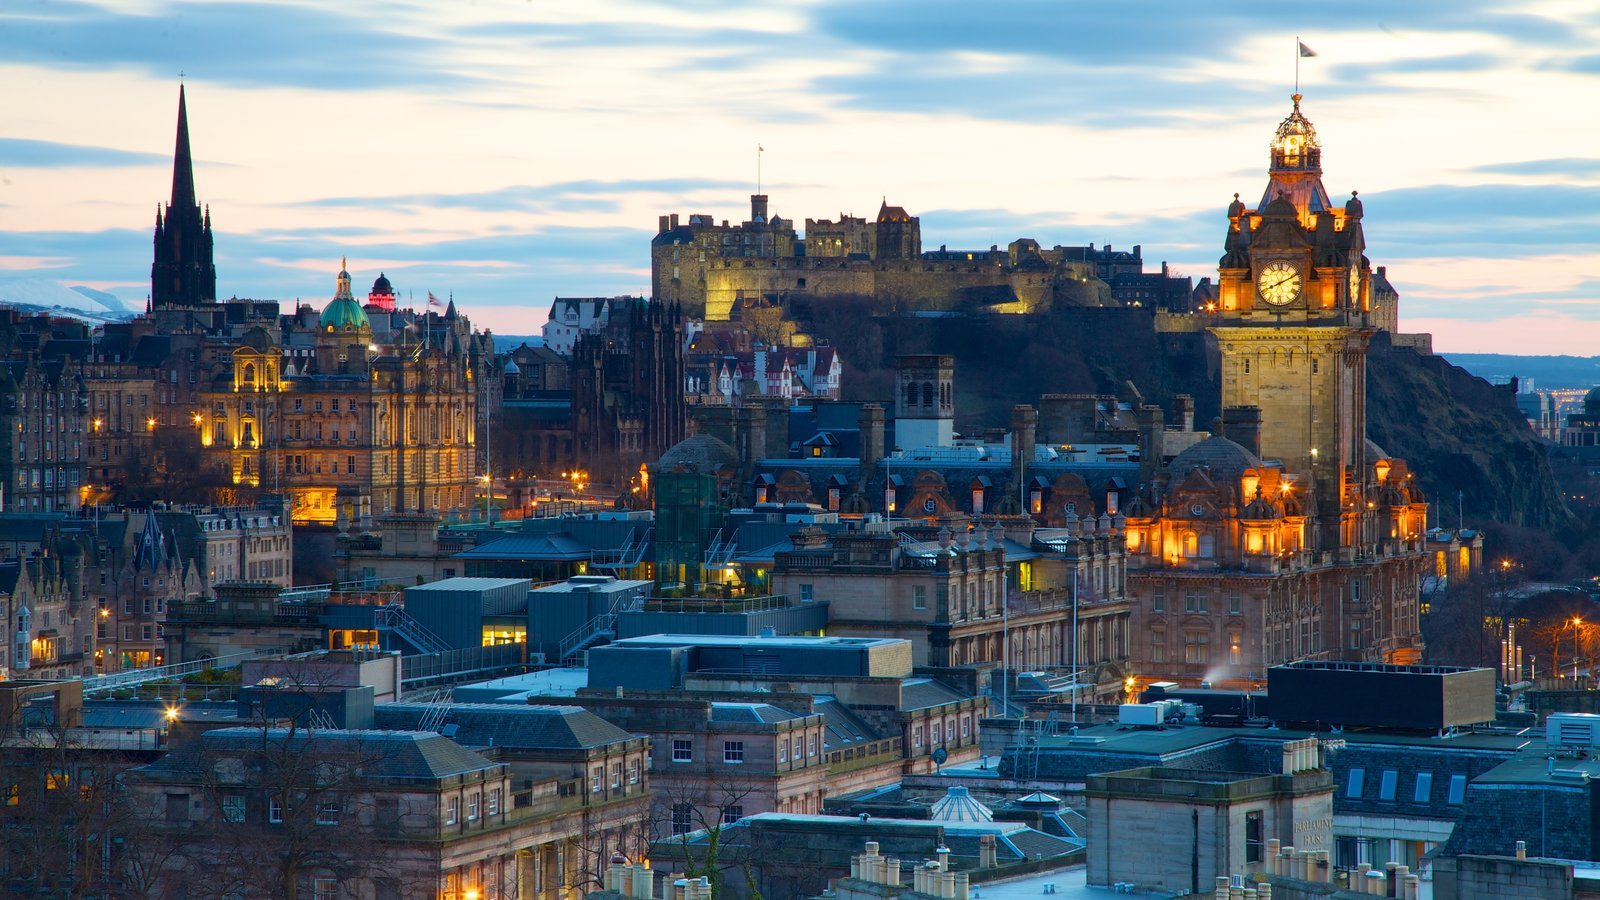 Calton Hill which includes a sunset, a city and heritage architecture